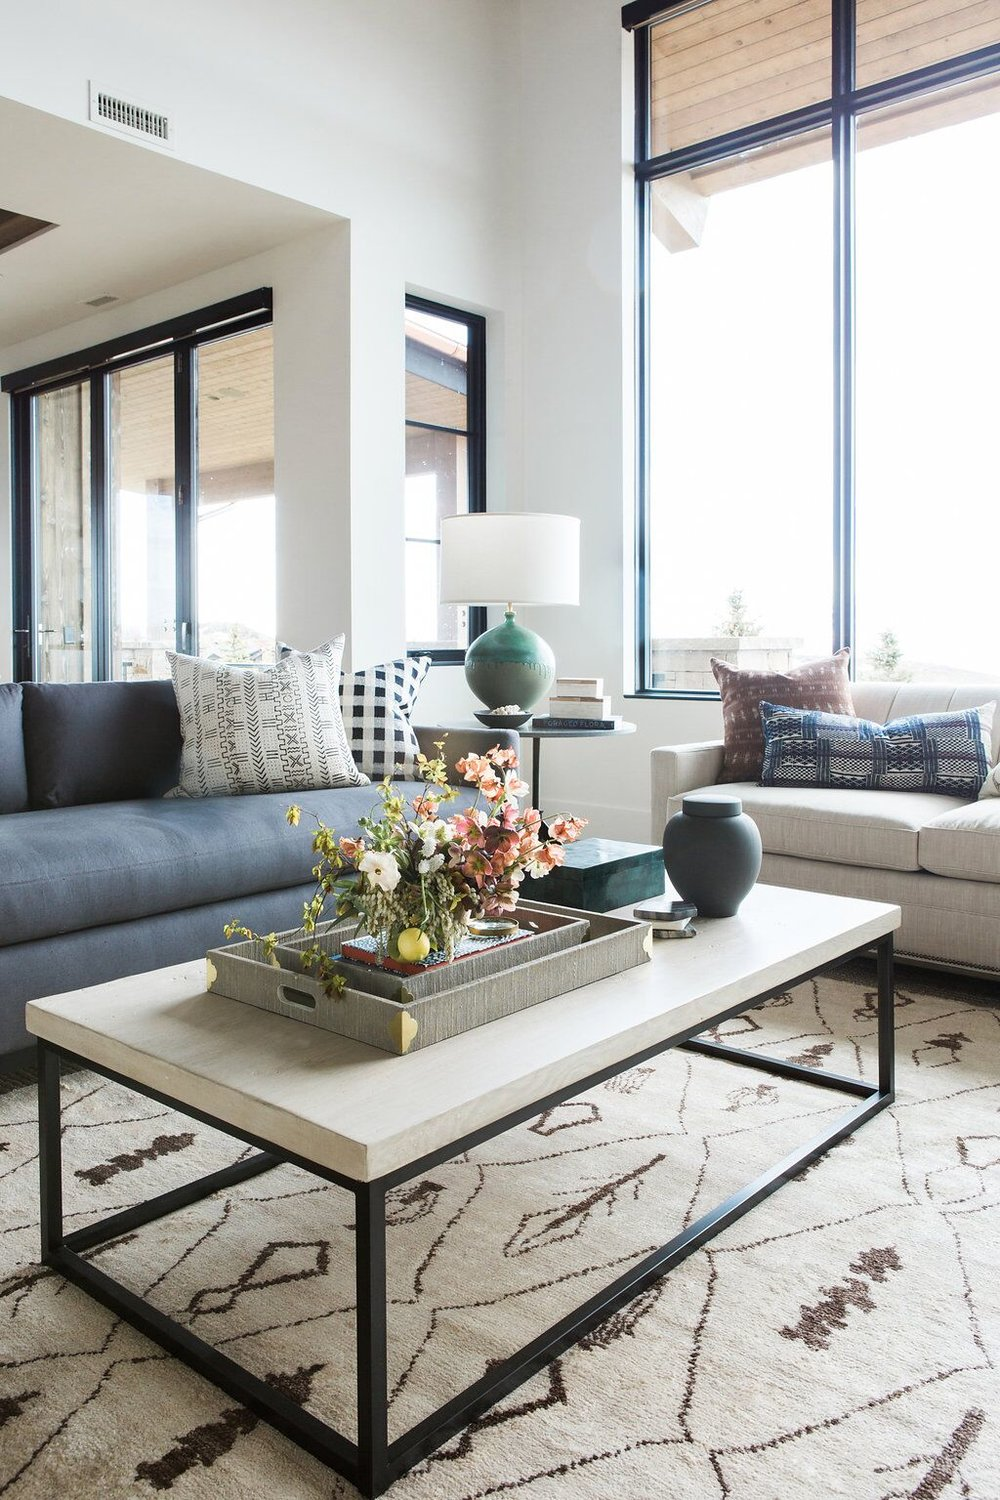 Modern, white coffee table in living room